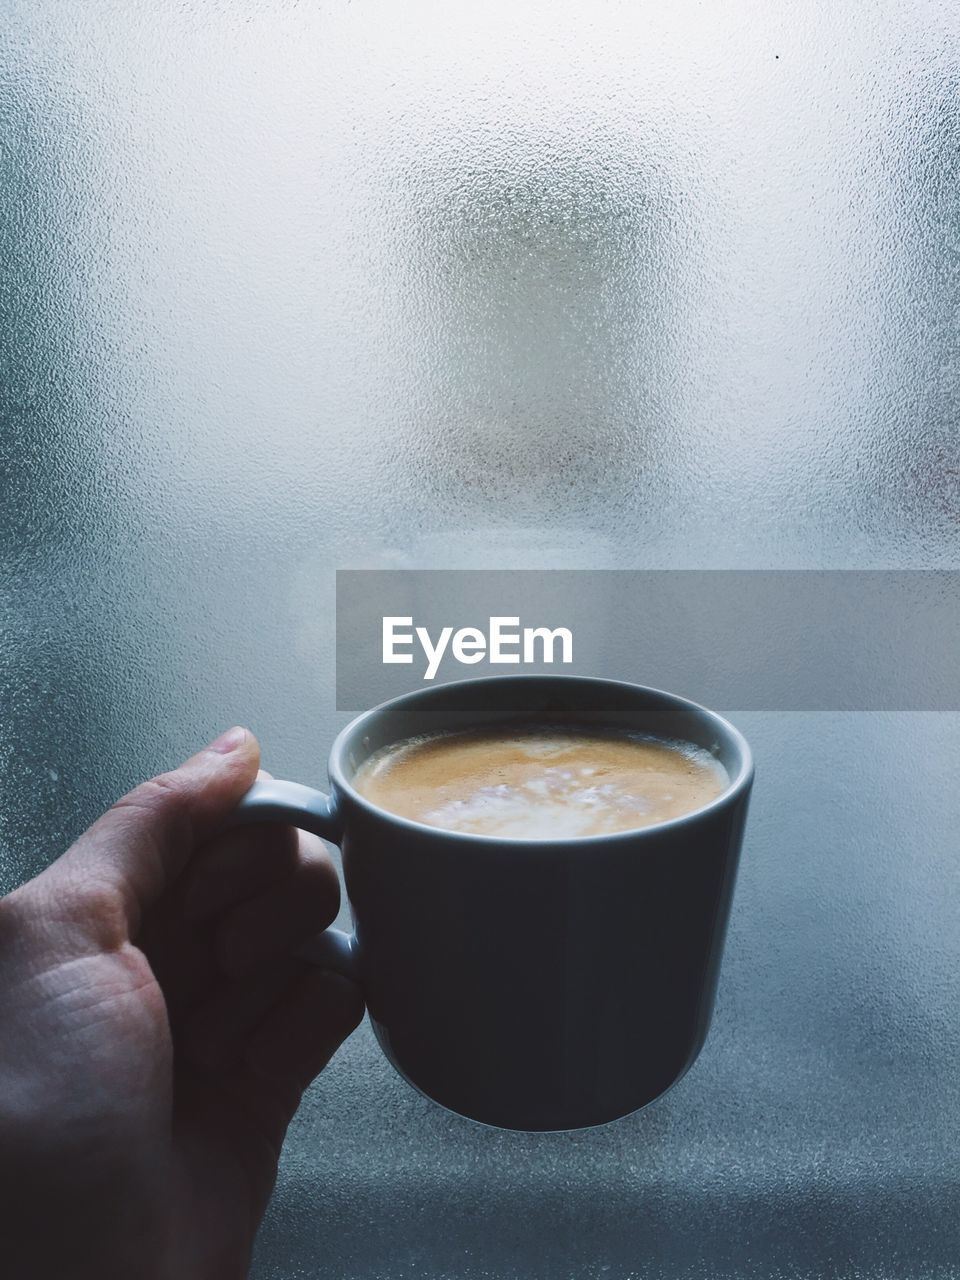 Cropped Image Of Hand Holding Coffee Cup Against Frosted Glass